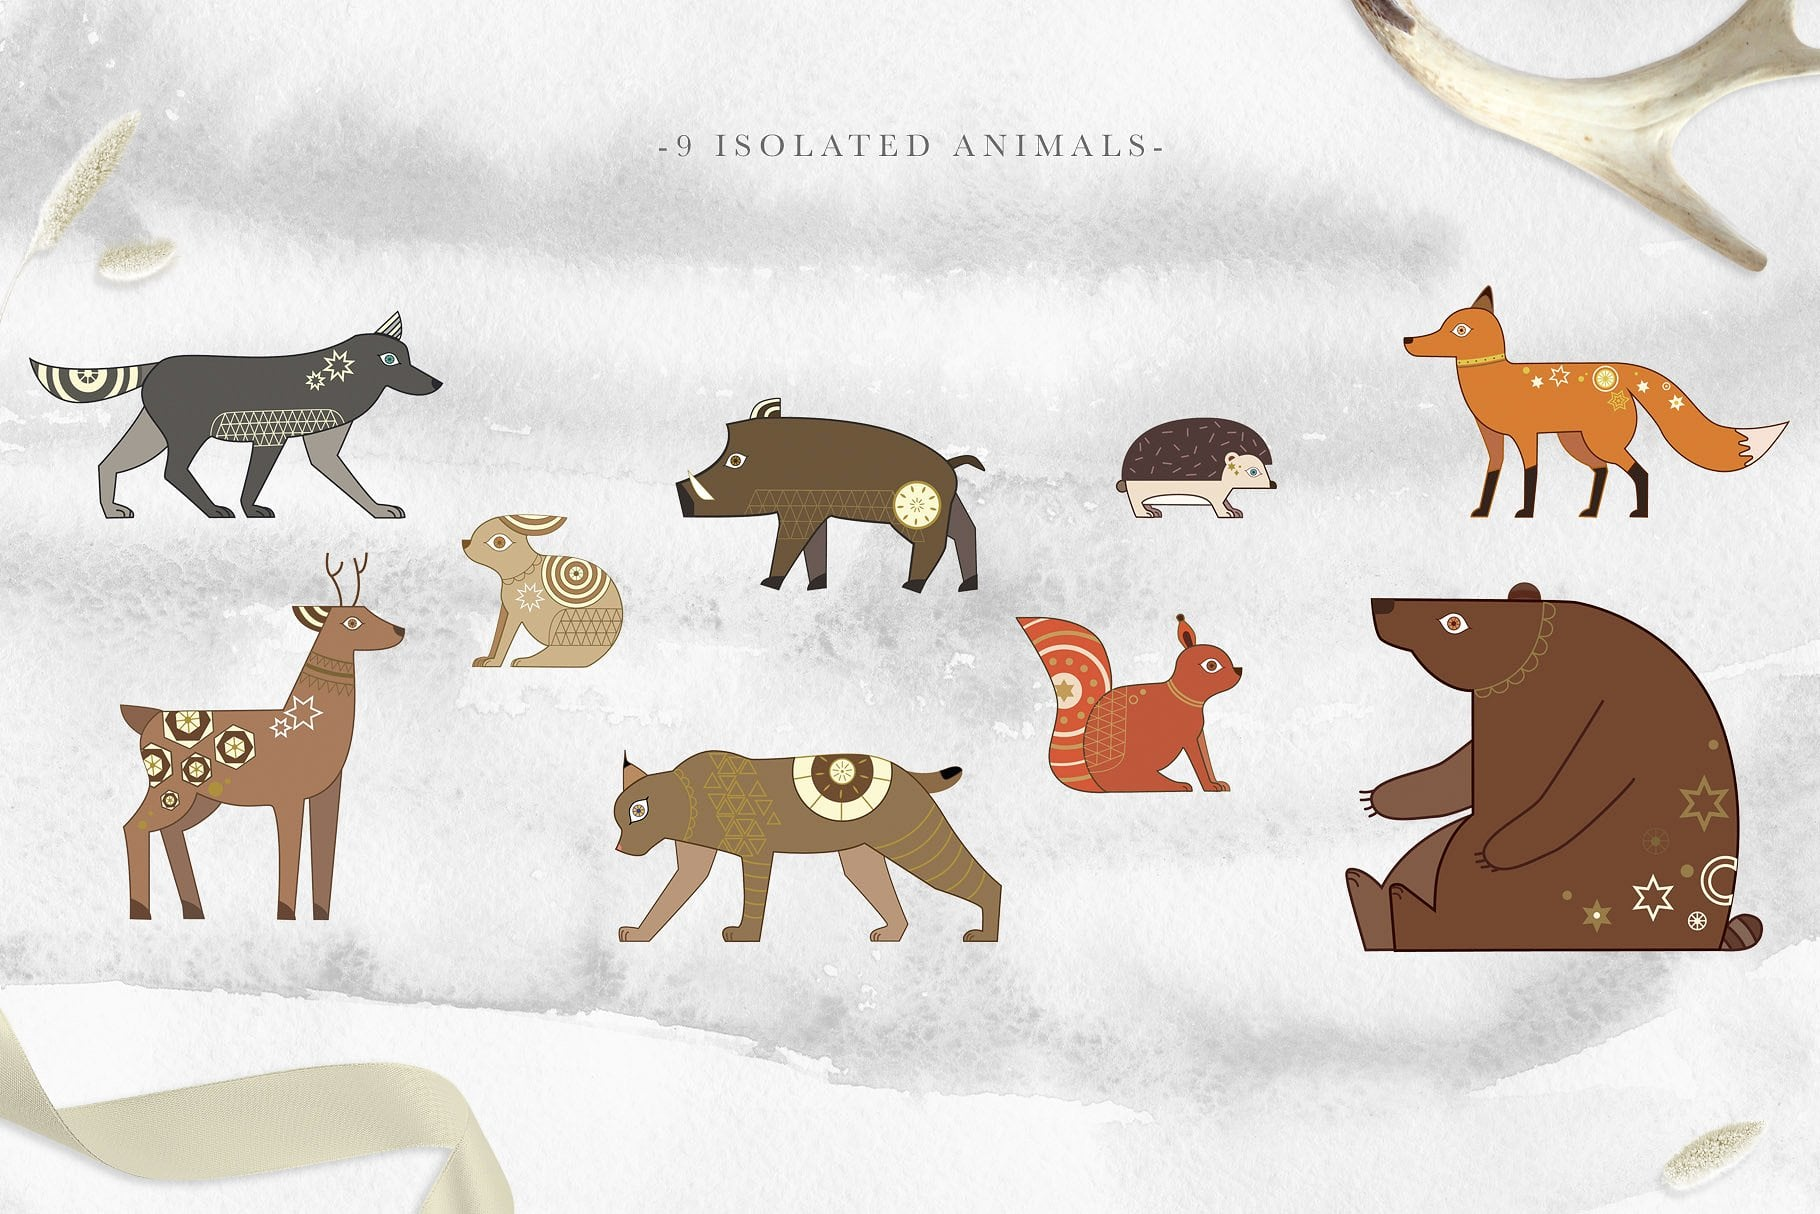 Very beautiful wild animals, each with a distinctive ornament.